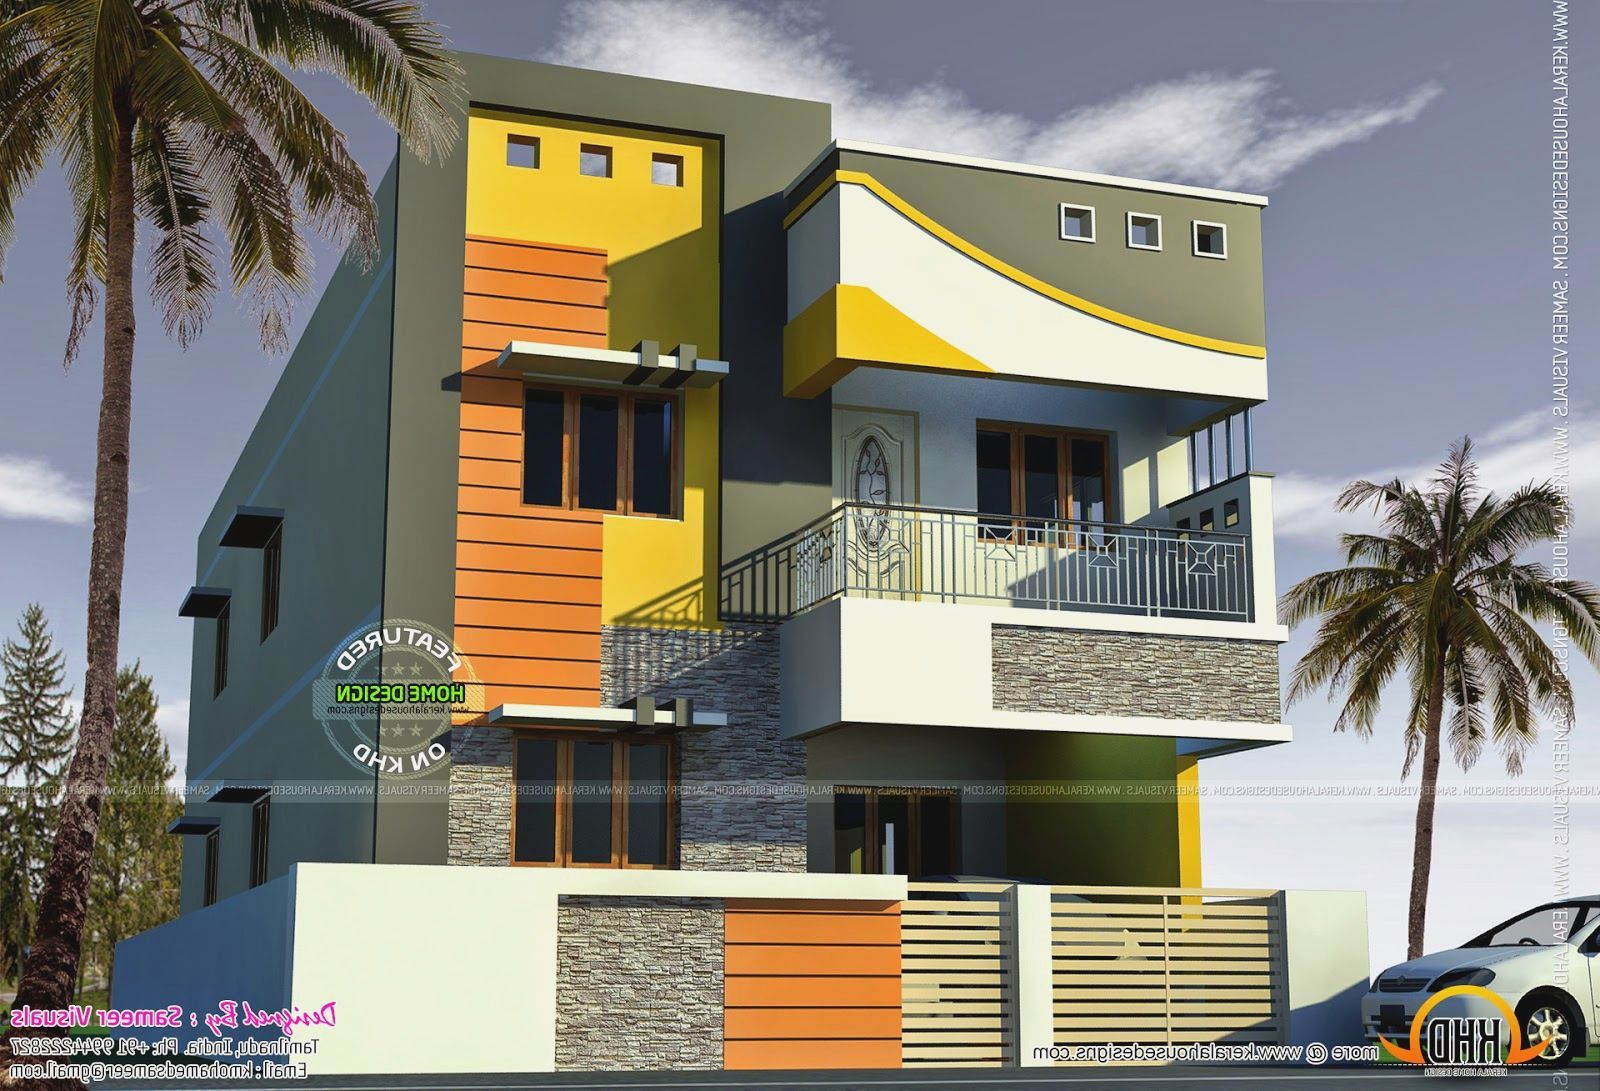 Tamilnadu house models more picture tamilnadu house models for Building front design